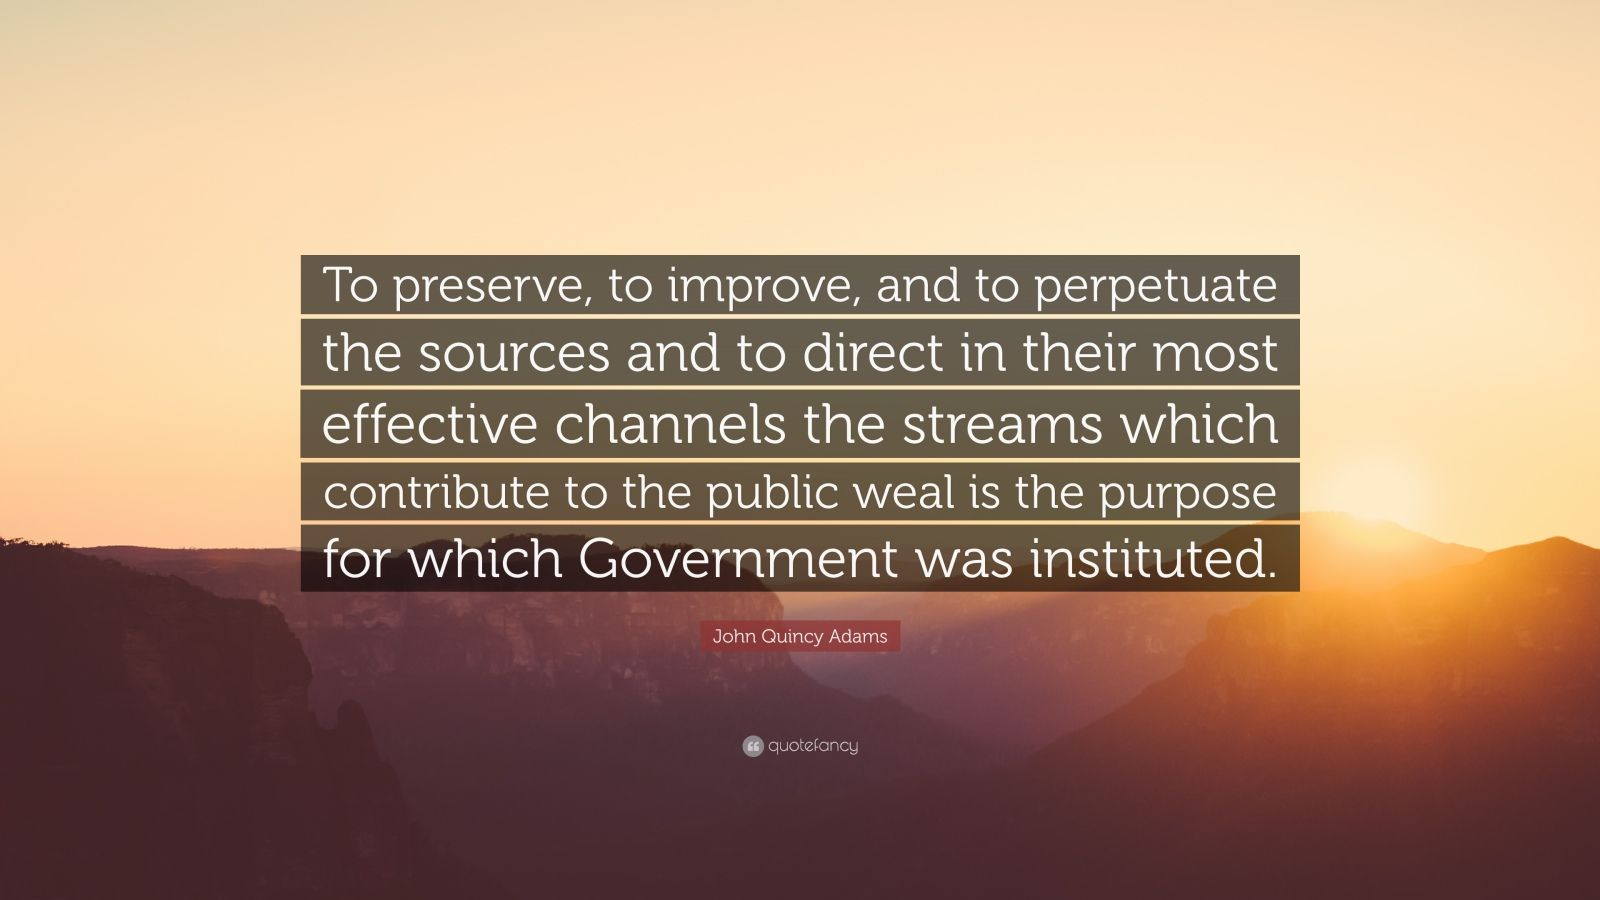 """John Quincy Adams Quote: """"To preserve, to improve, and to perpetuate the sources and to direct in their most effective channels the streams which contribute to the public weal is the purpose for which Government was instituted."""""""